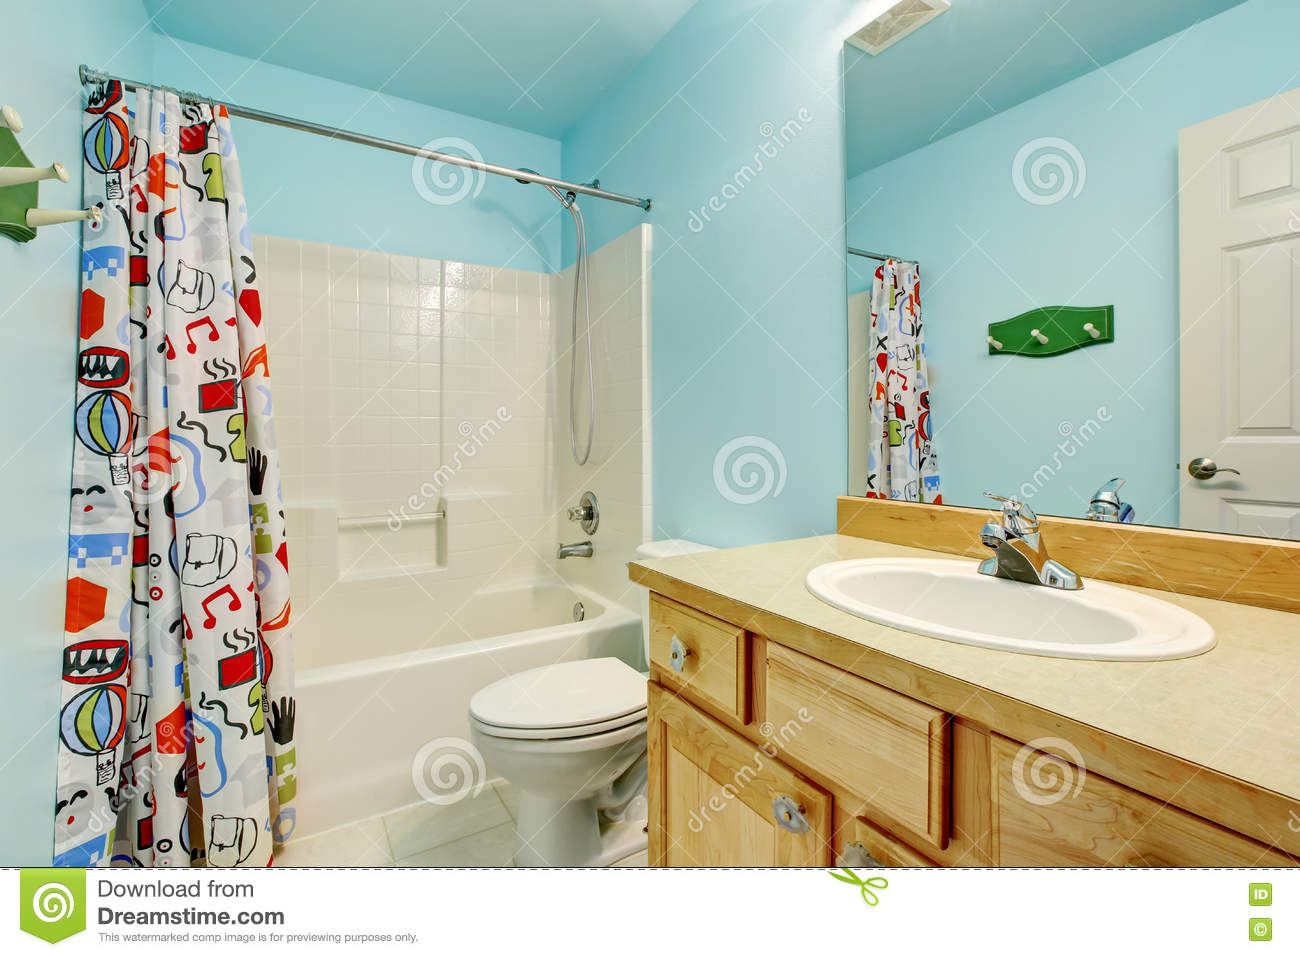 Kids Bathroom In Blue Tones With Wooden Cabinets And Colorful Shower Curtain